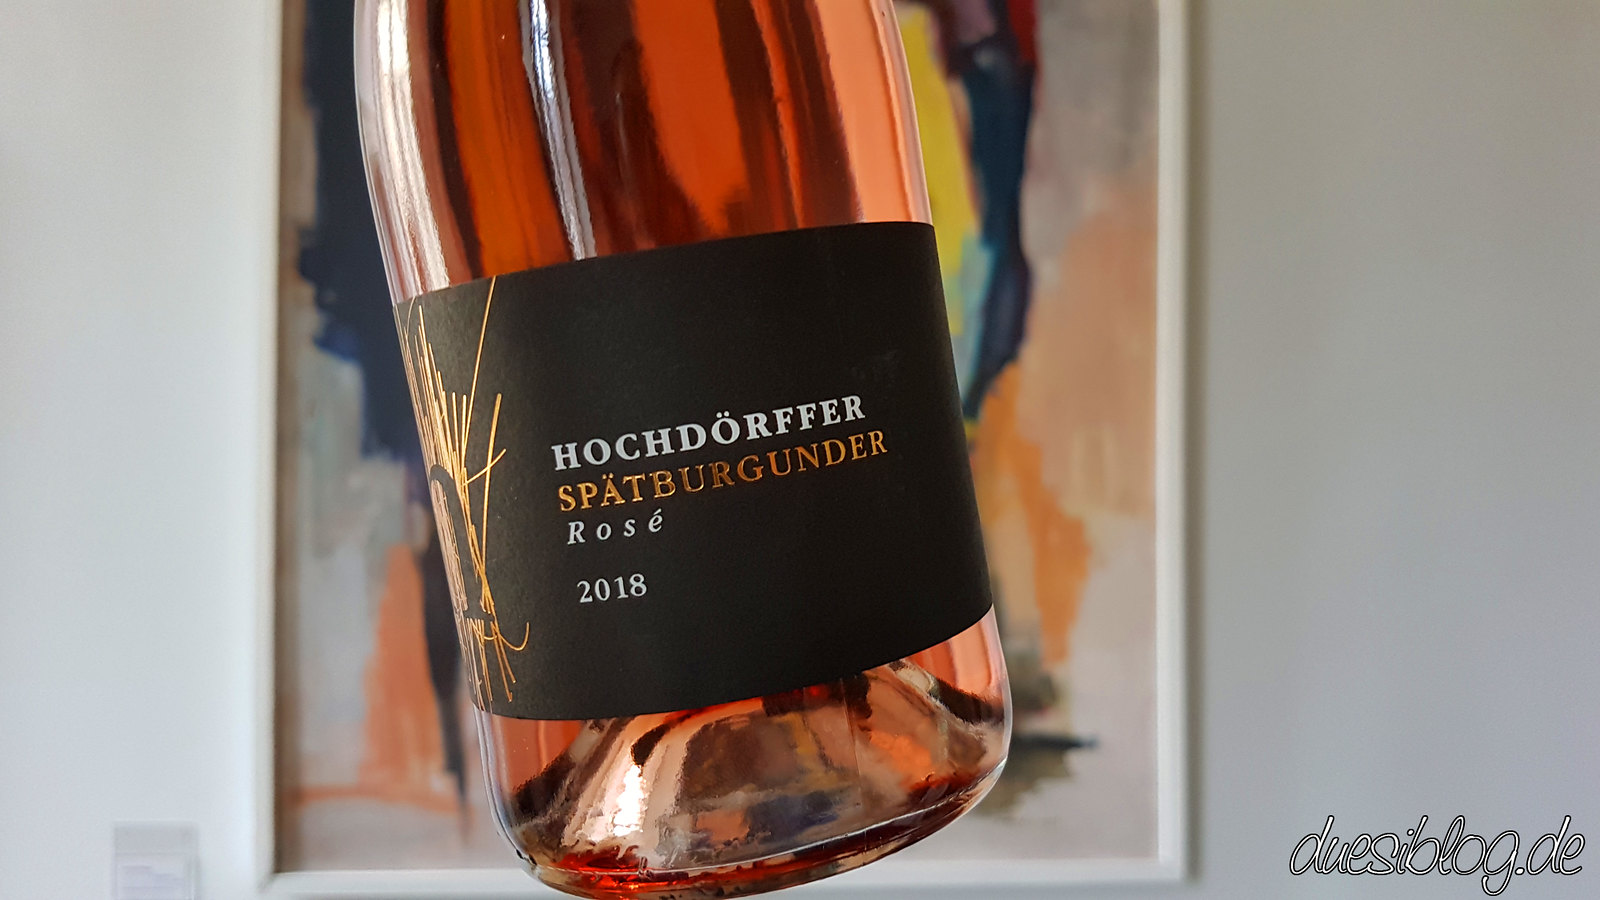 Wein am Dom Speyer 2019 wineblog duesiblog 06